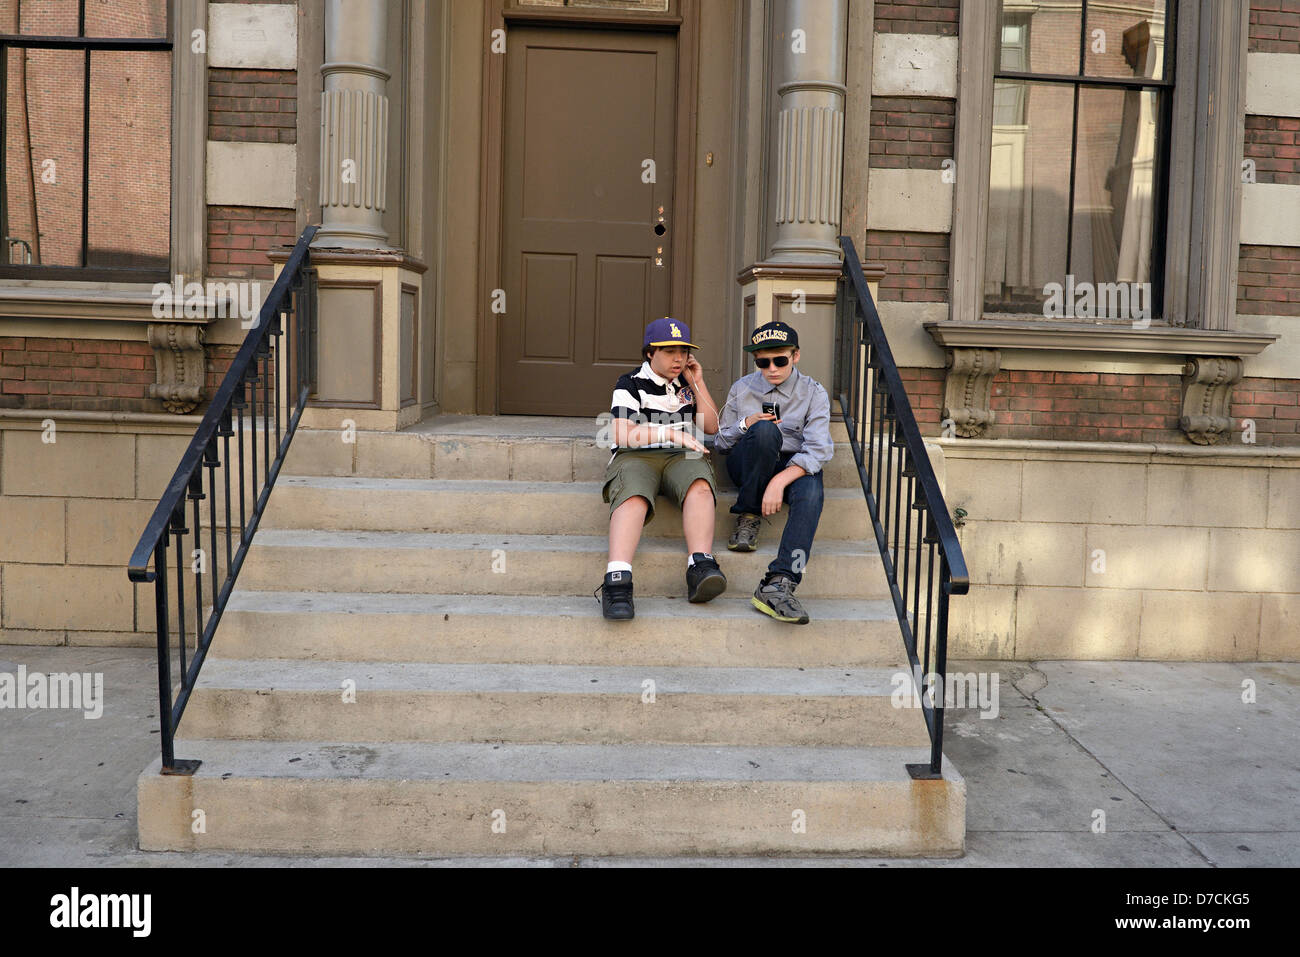 two boys listen ipod paramount pictures studios - Stock Image